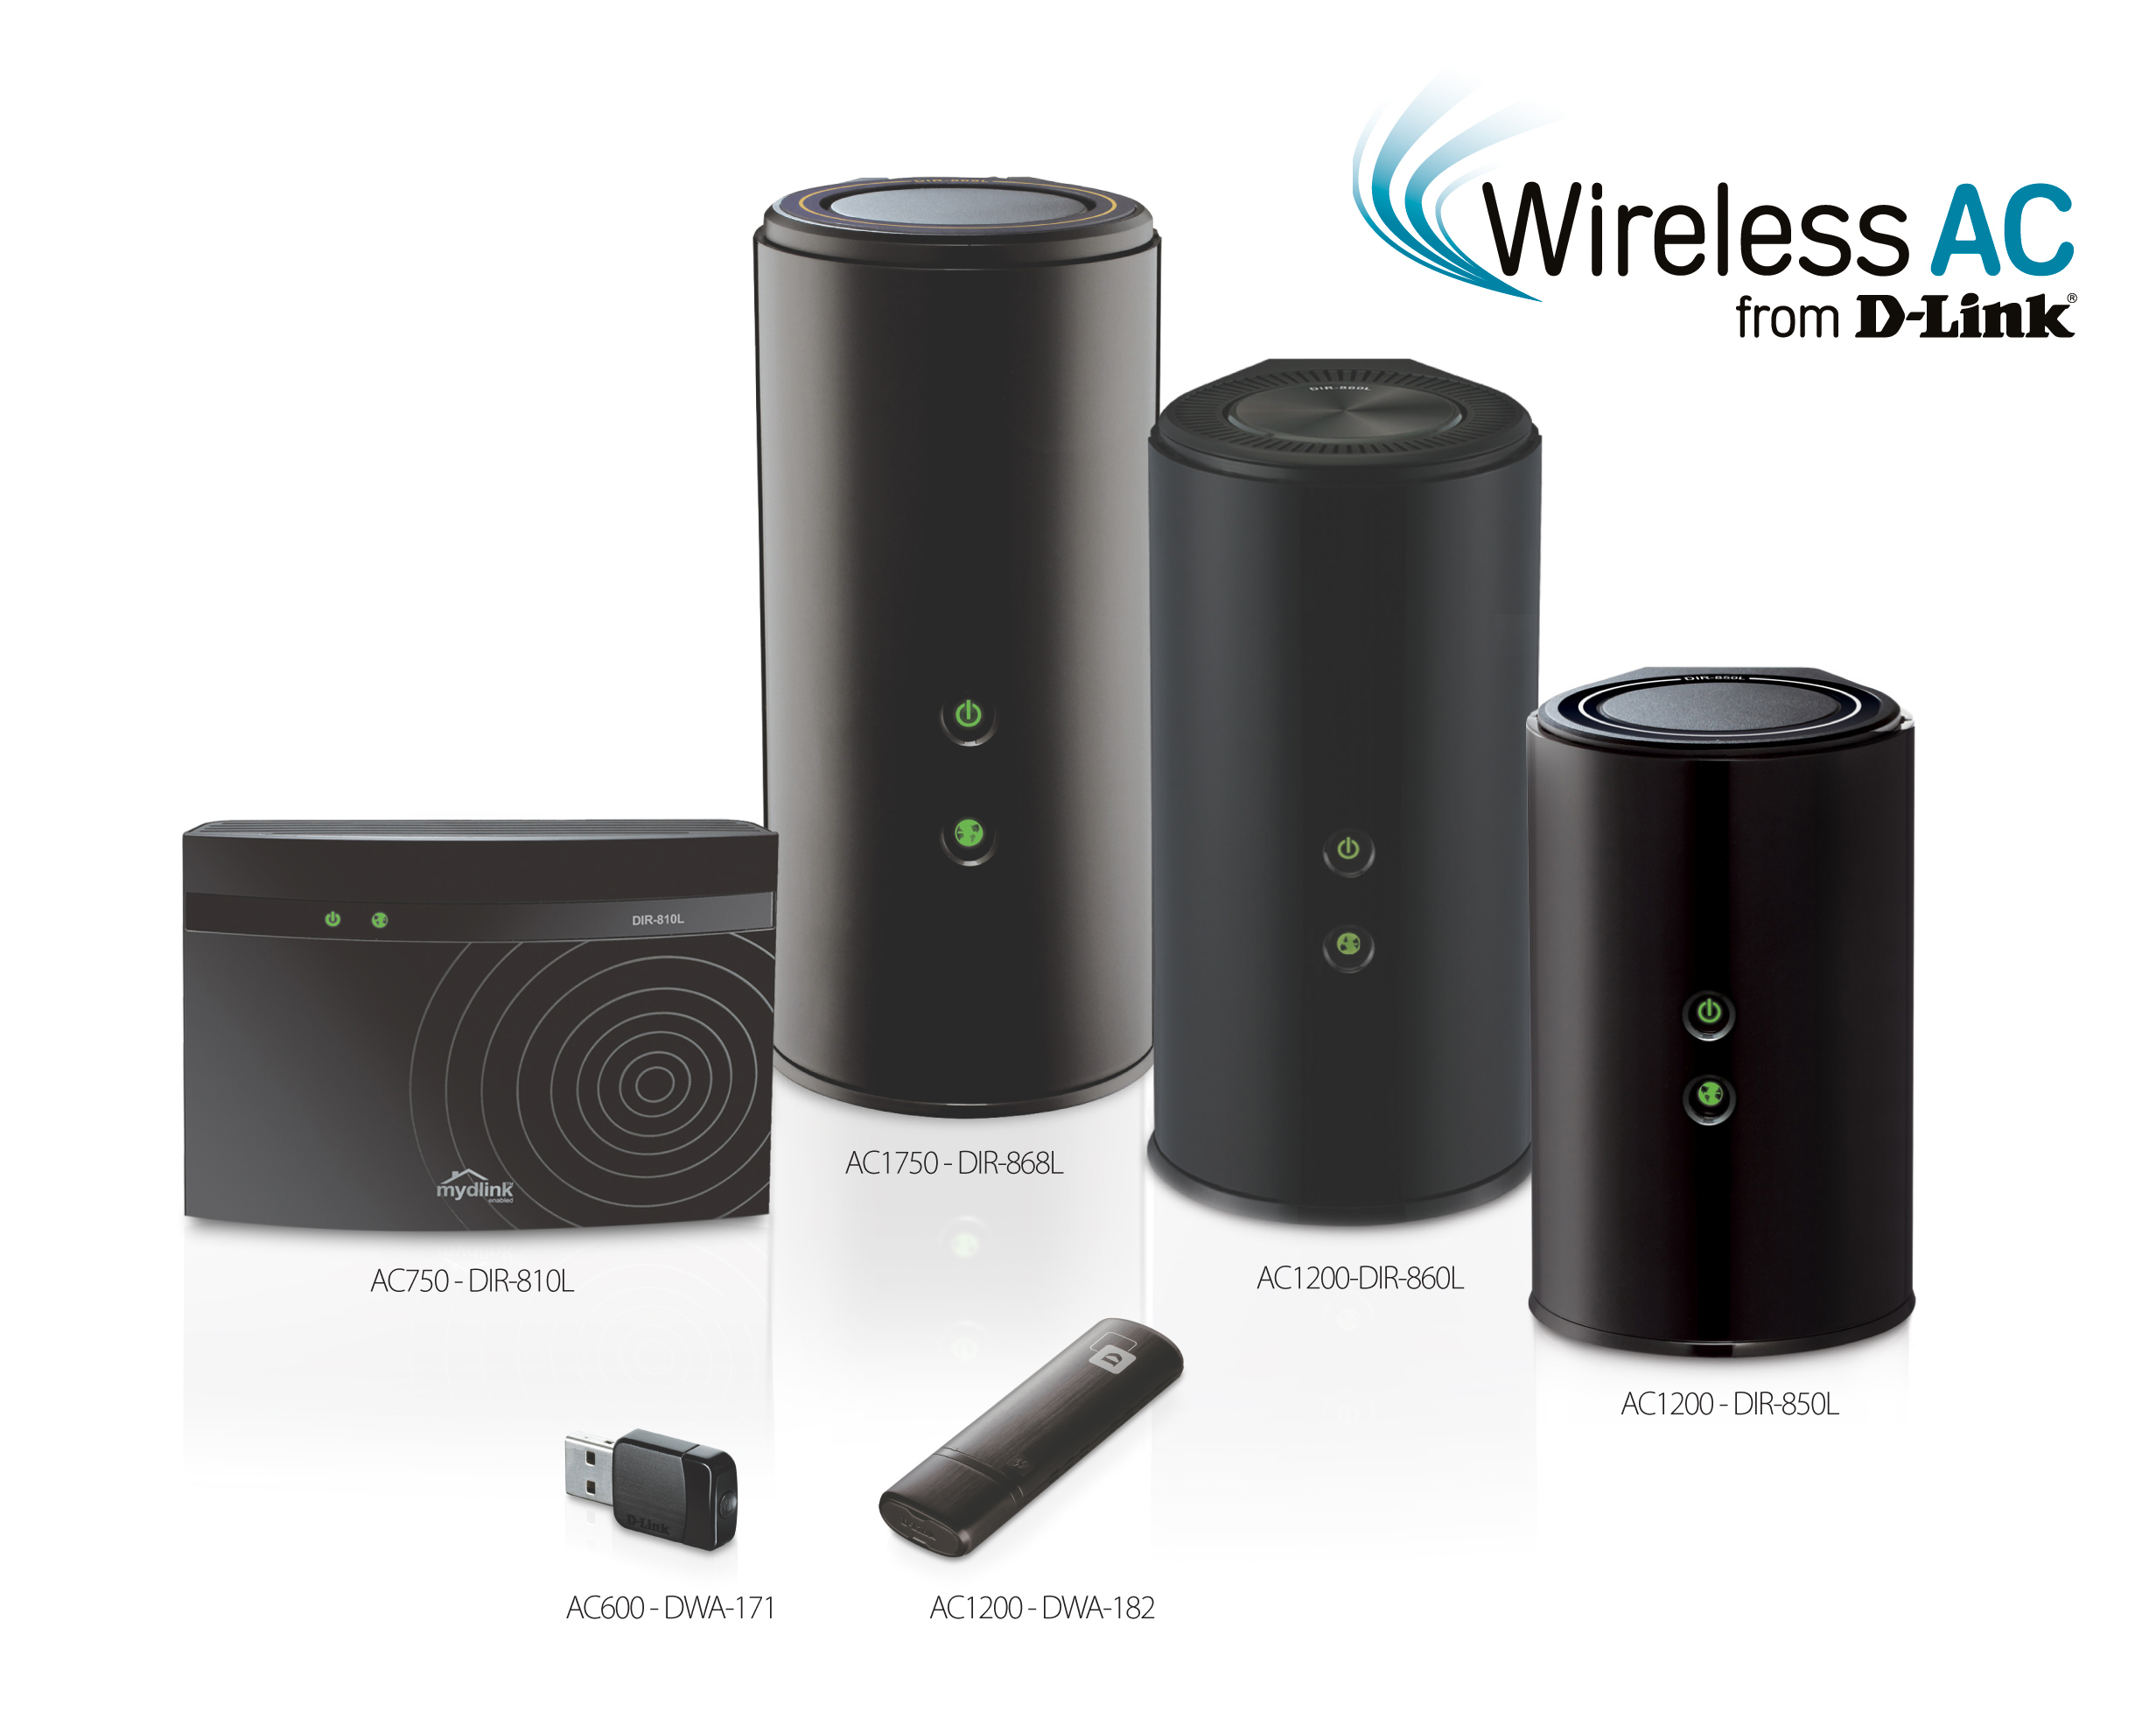 D-Link_WiFi_Wireless_AC_Gama